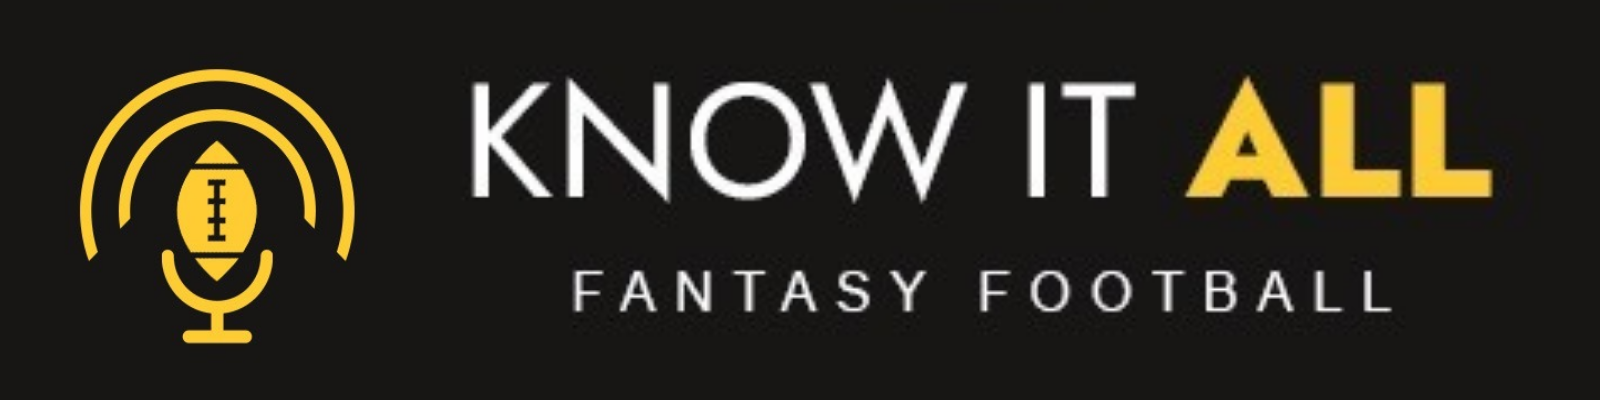 Fantasy Football Know It All